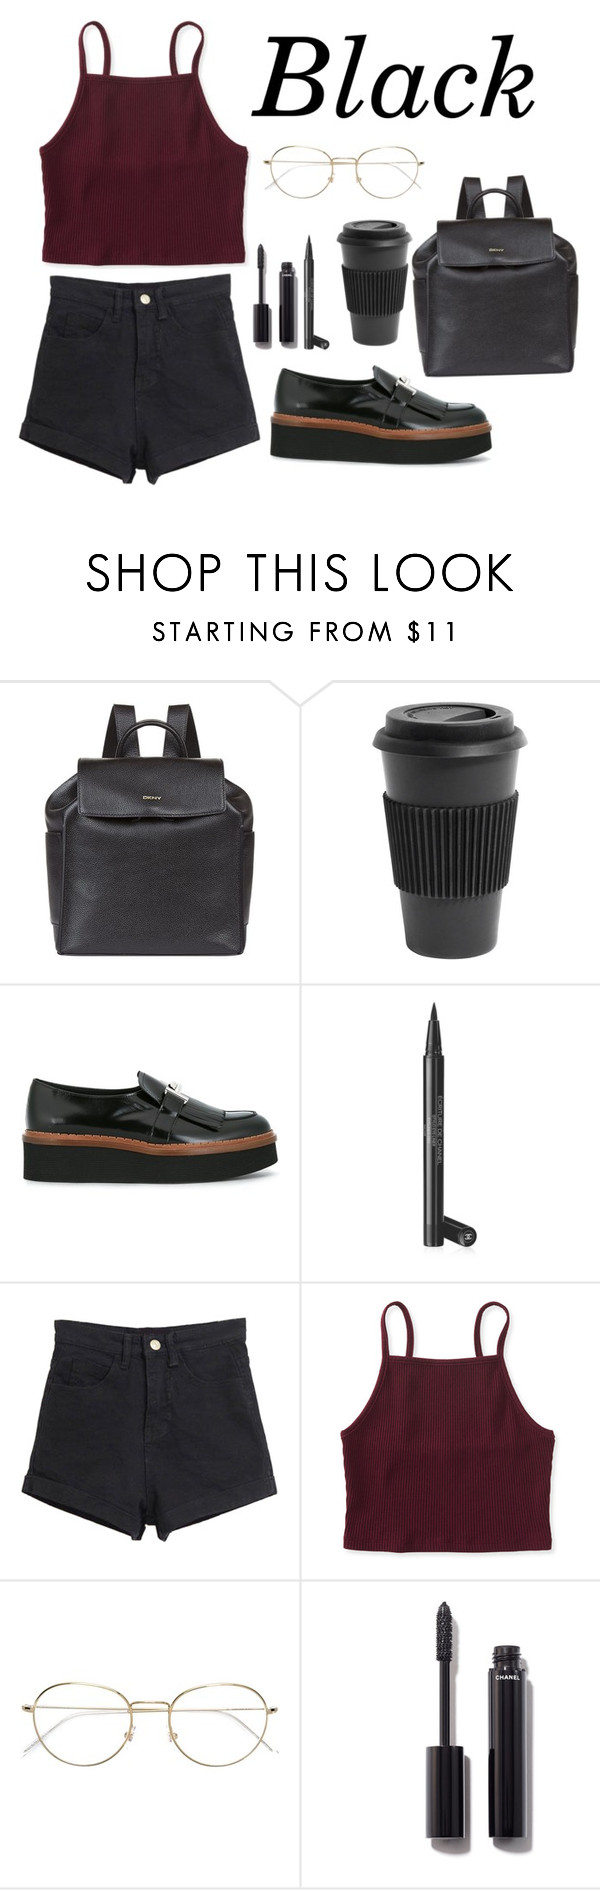 """""""Black outfit⚫️"""" by jillvs ❤ liked on Polyvore featuring DKNY, Homage, Tod's, Chanel, Aéropostale and RetroSuperFuture"""